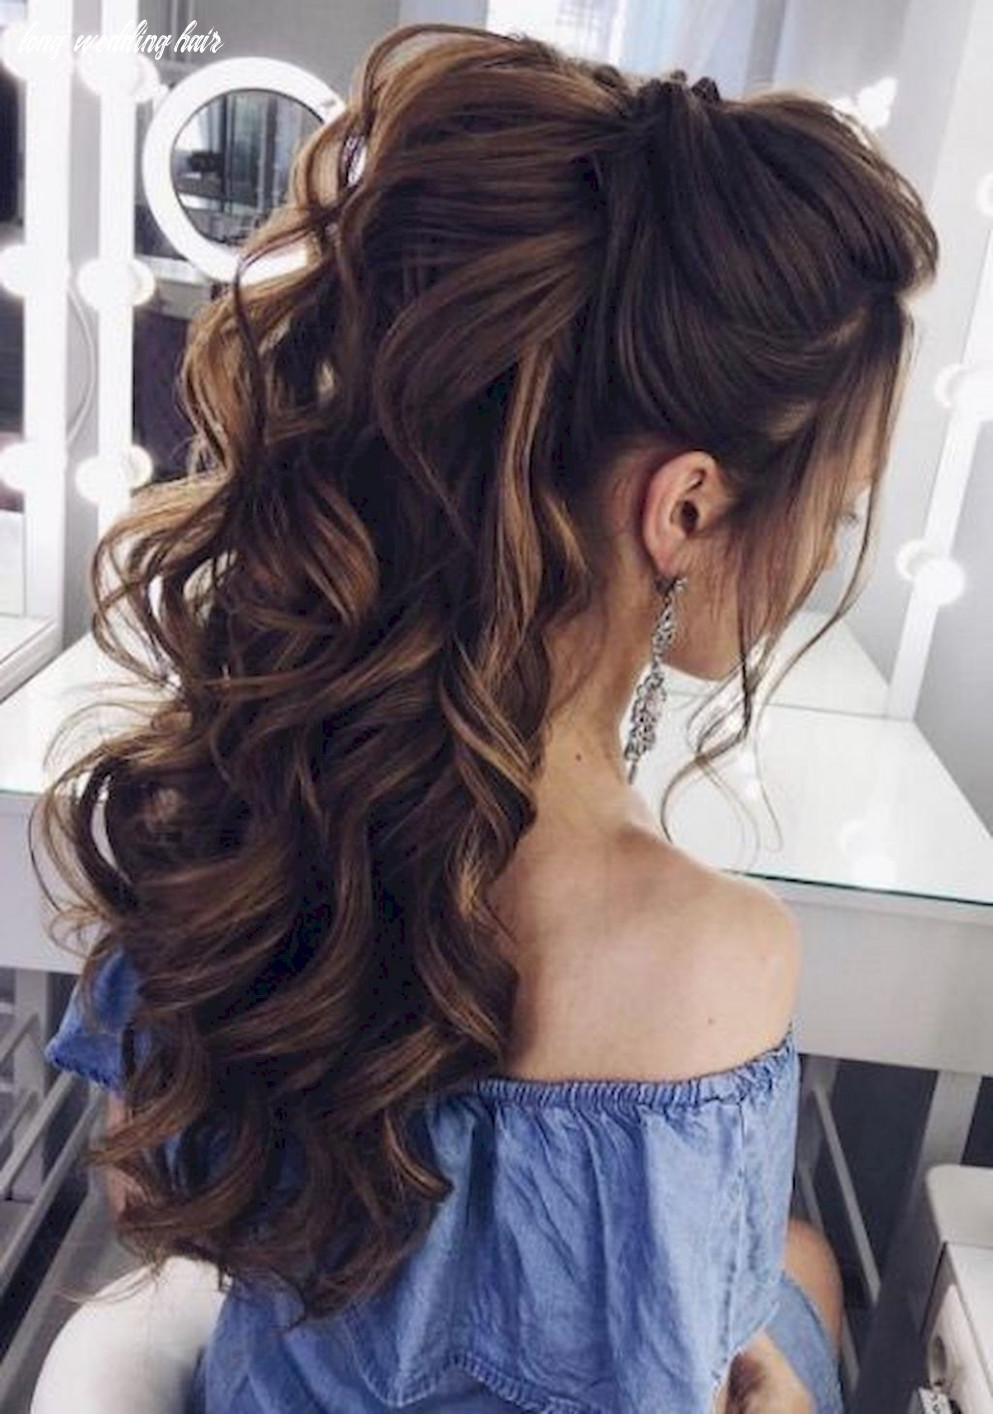 8 bridal wedding hairstyles for long hair that will inspire